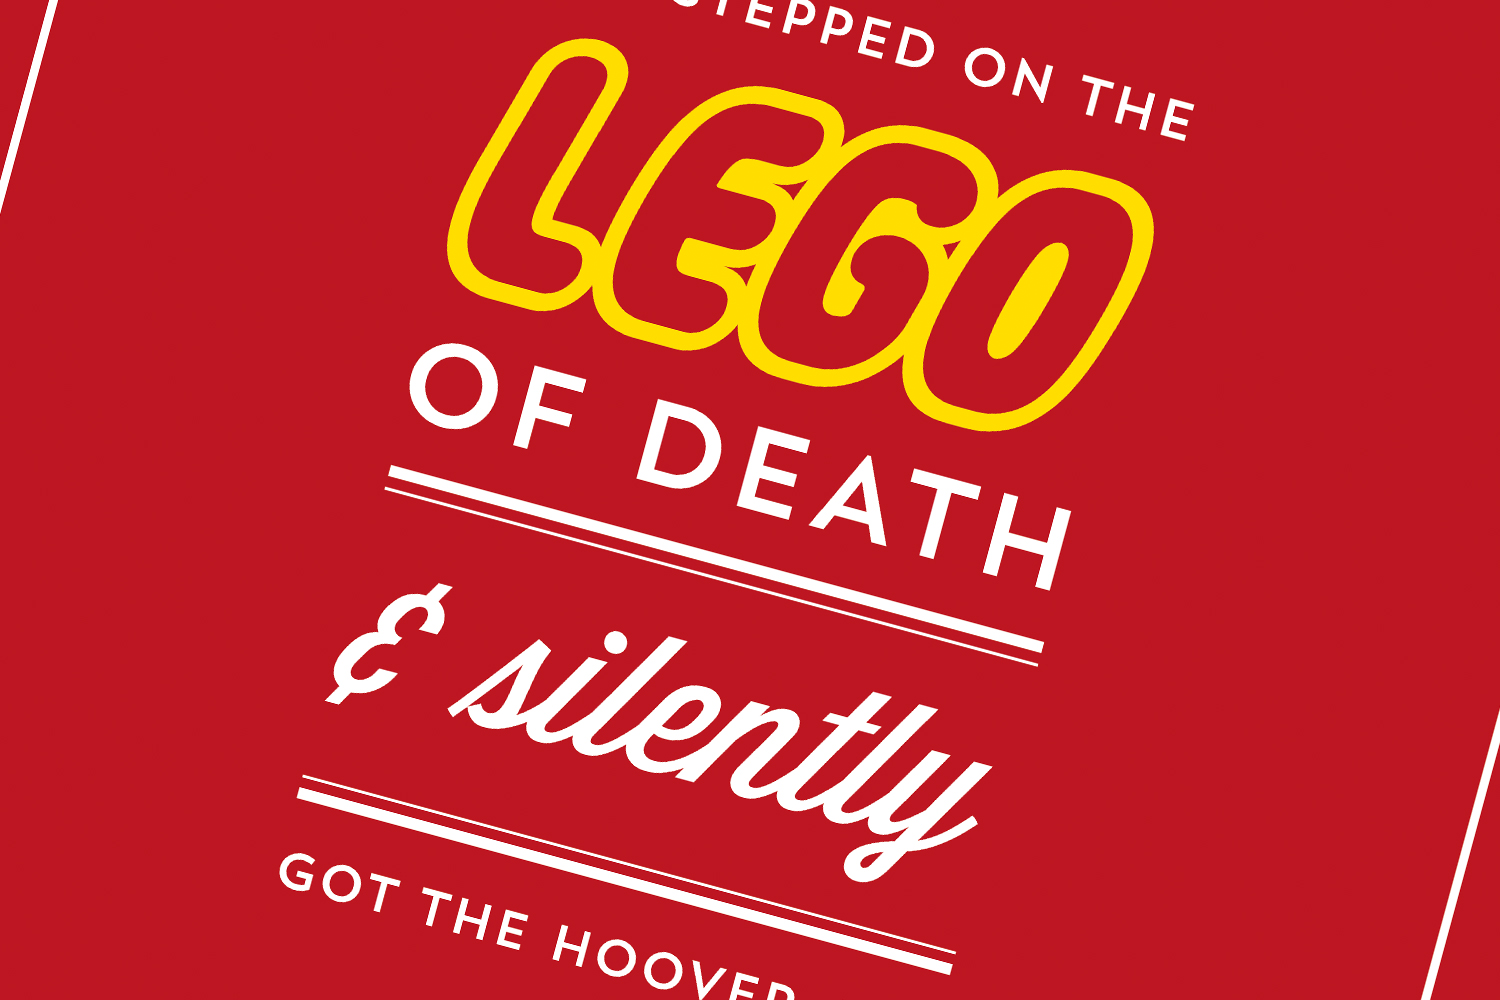 The Lego of Death – FREE PRINTABLE